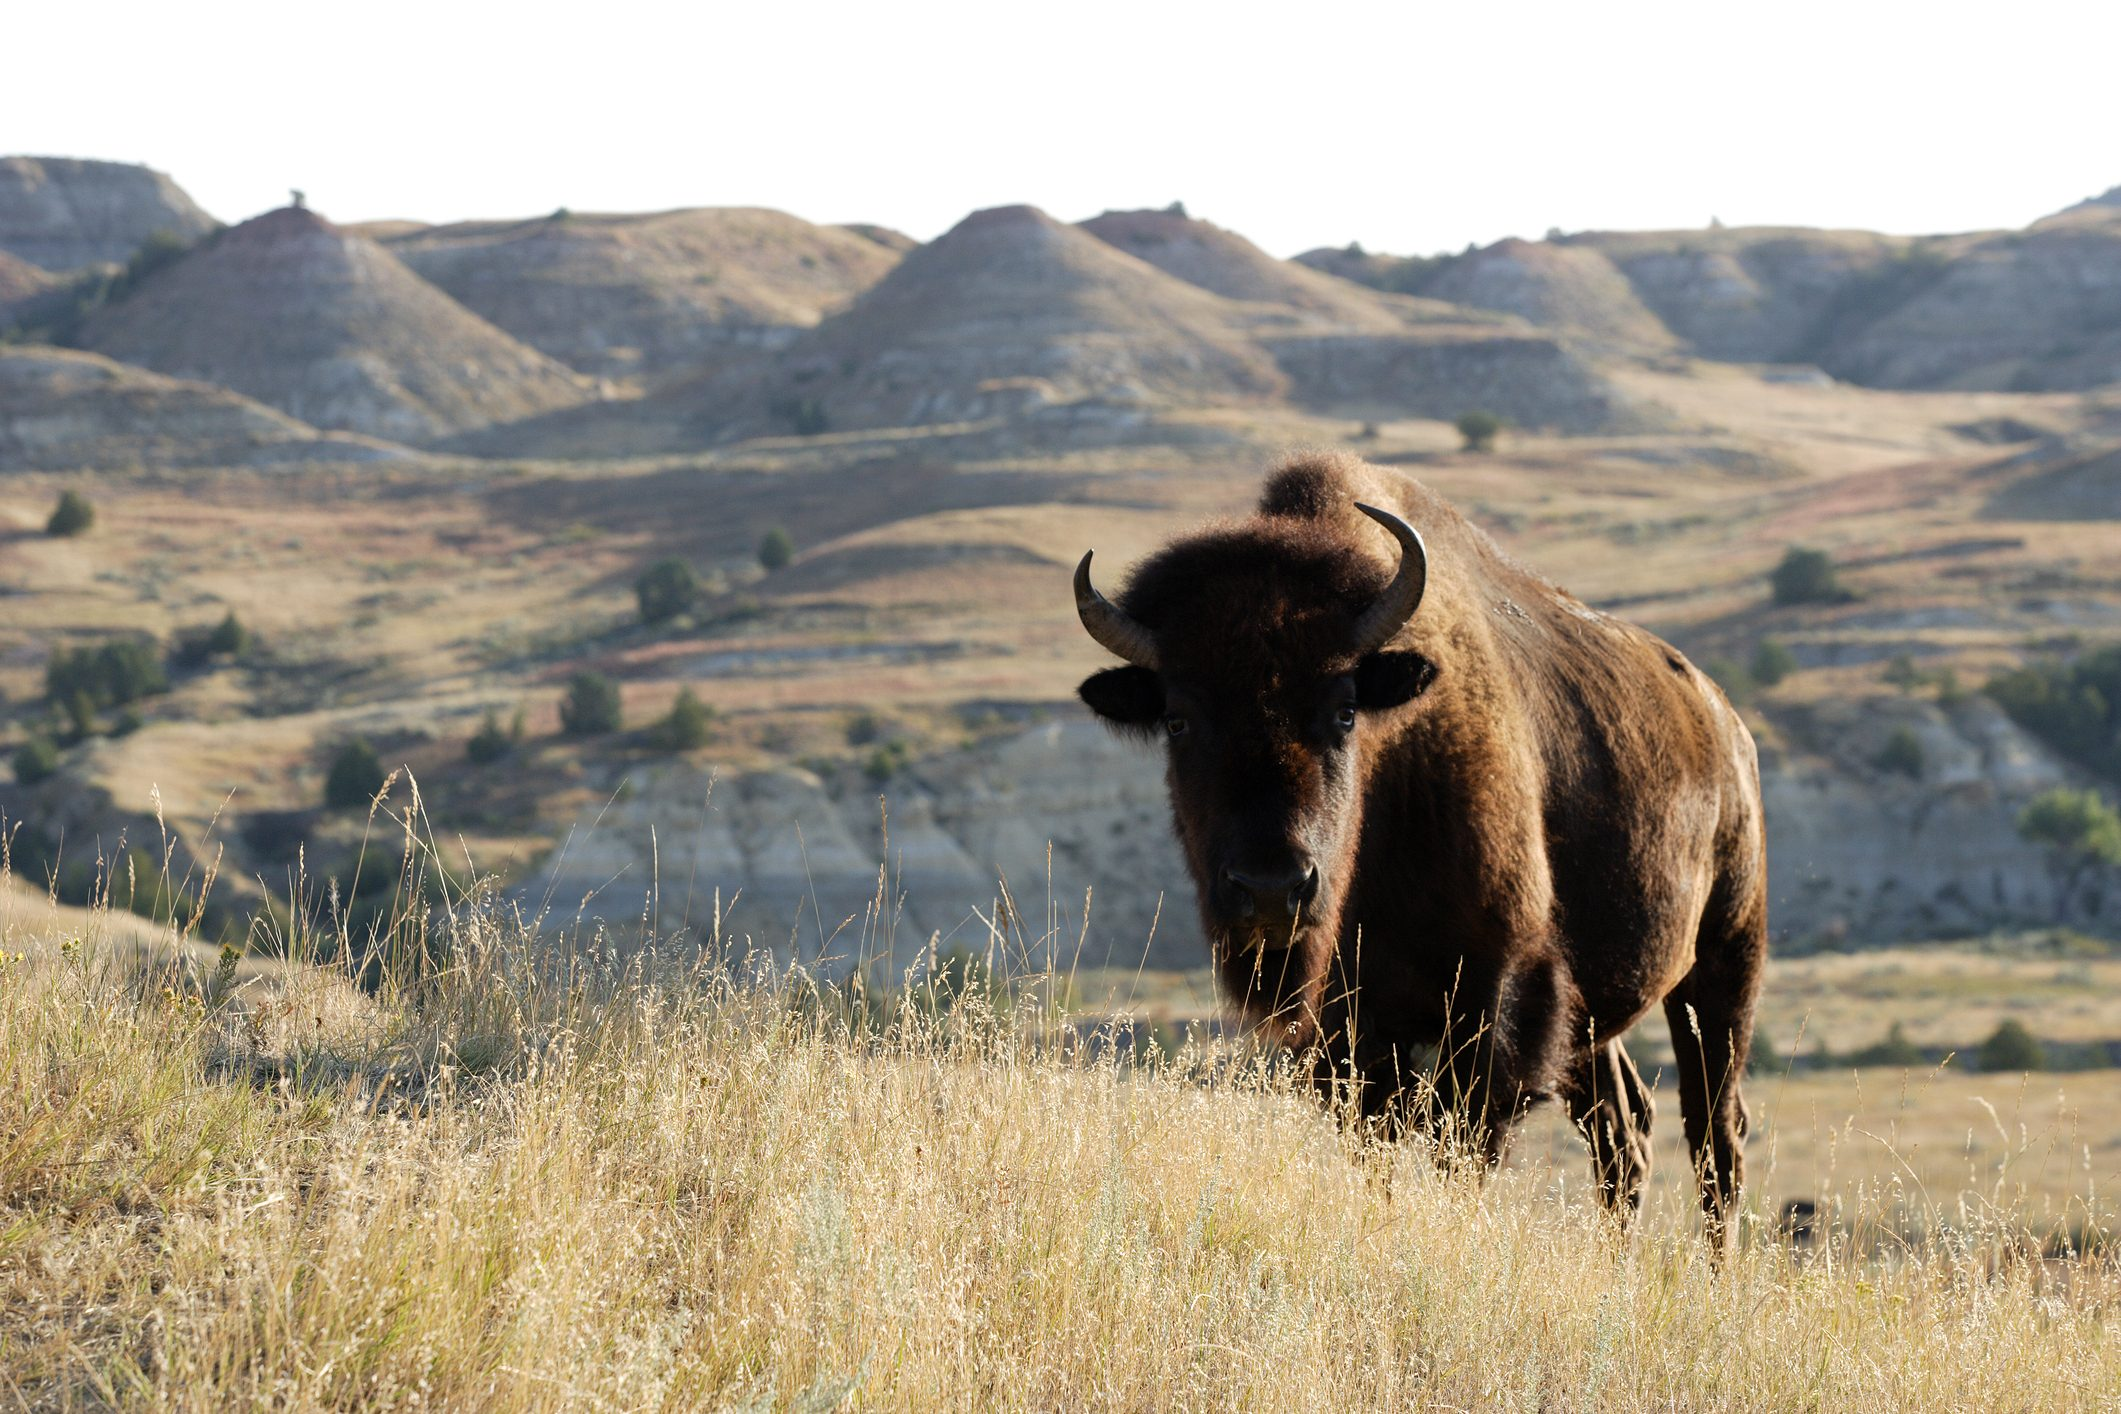 Bison on the landscape of grass and hills